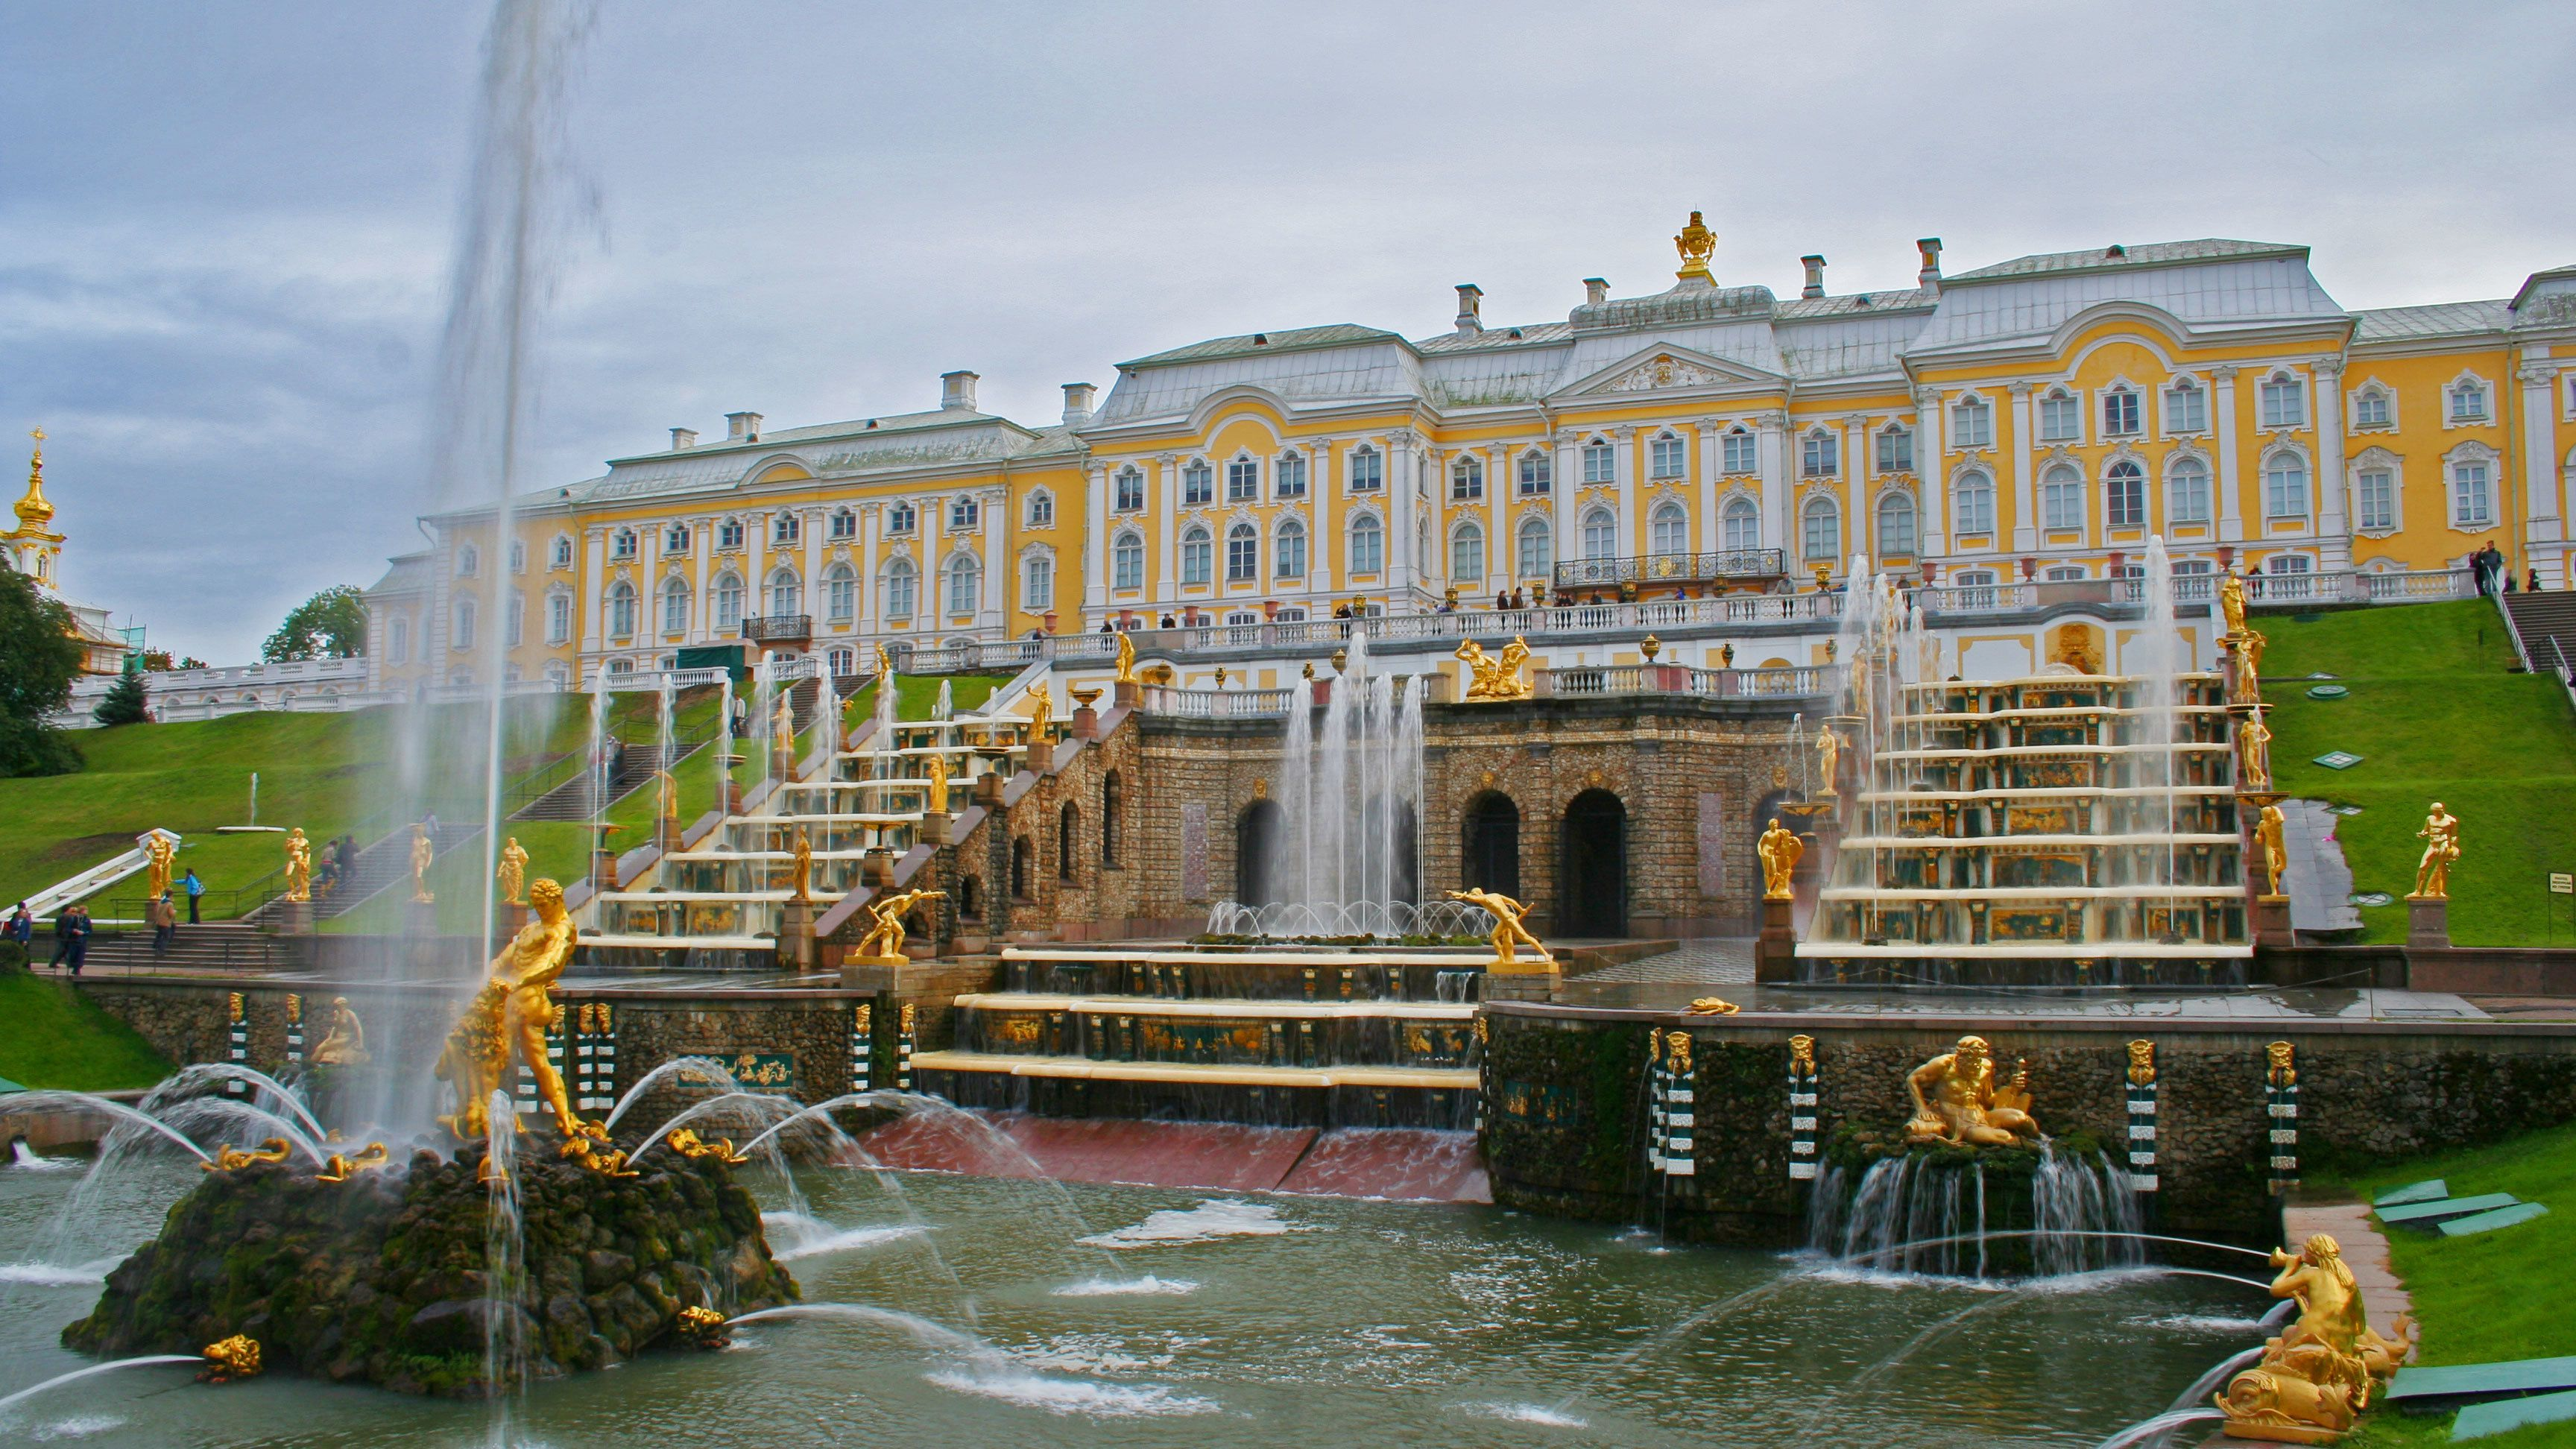 Private Peterhof Palace & Gardens Tour